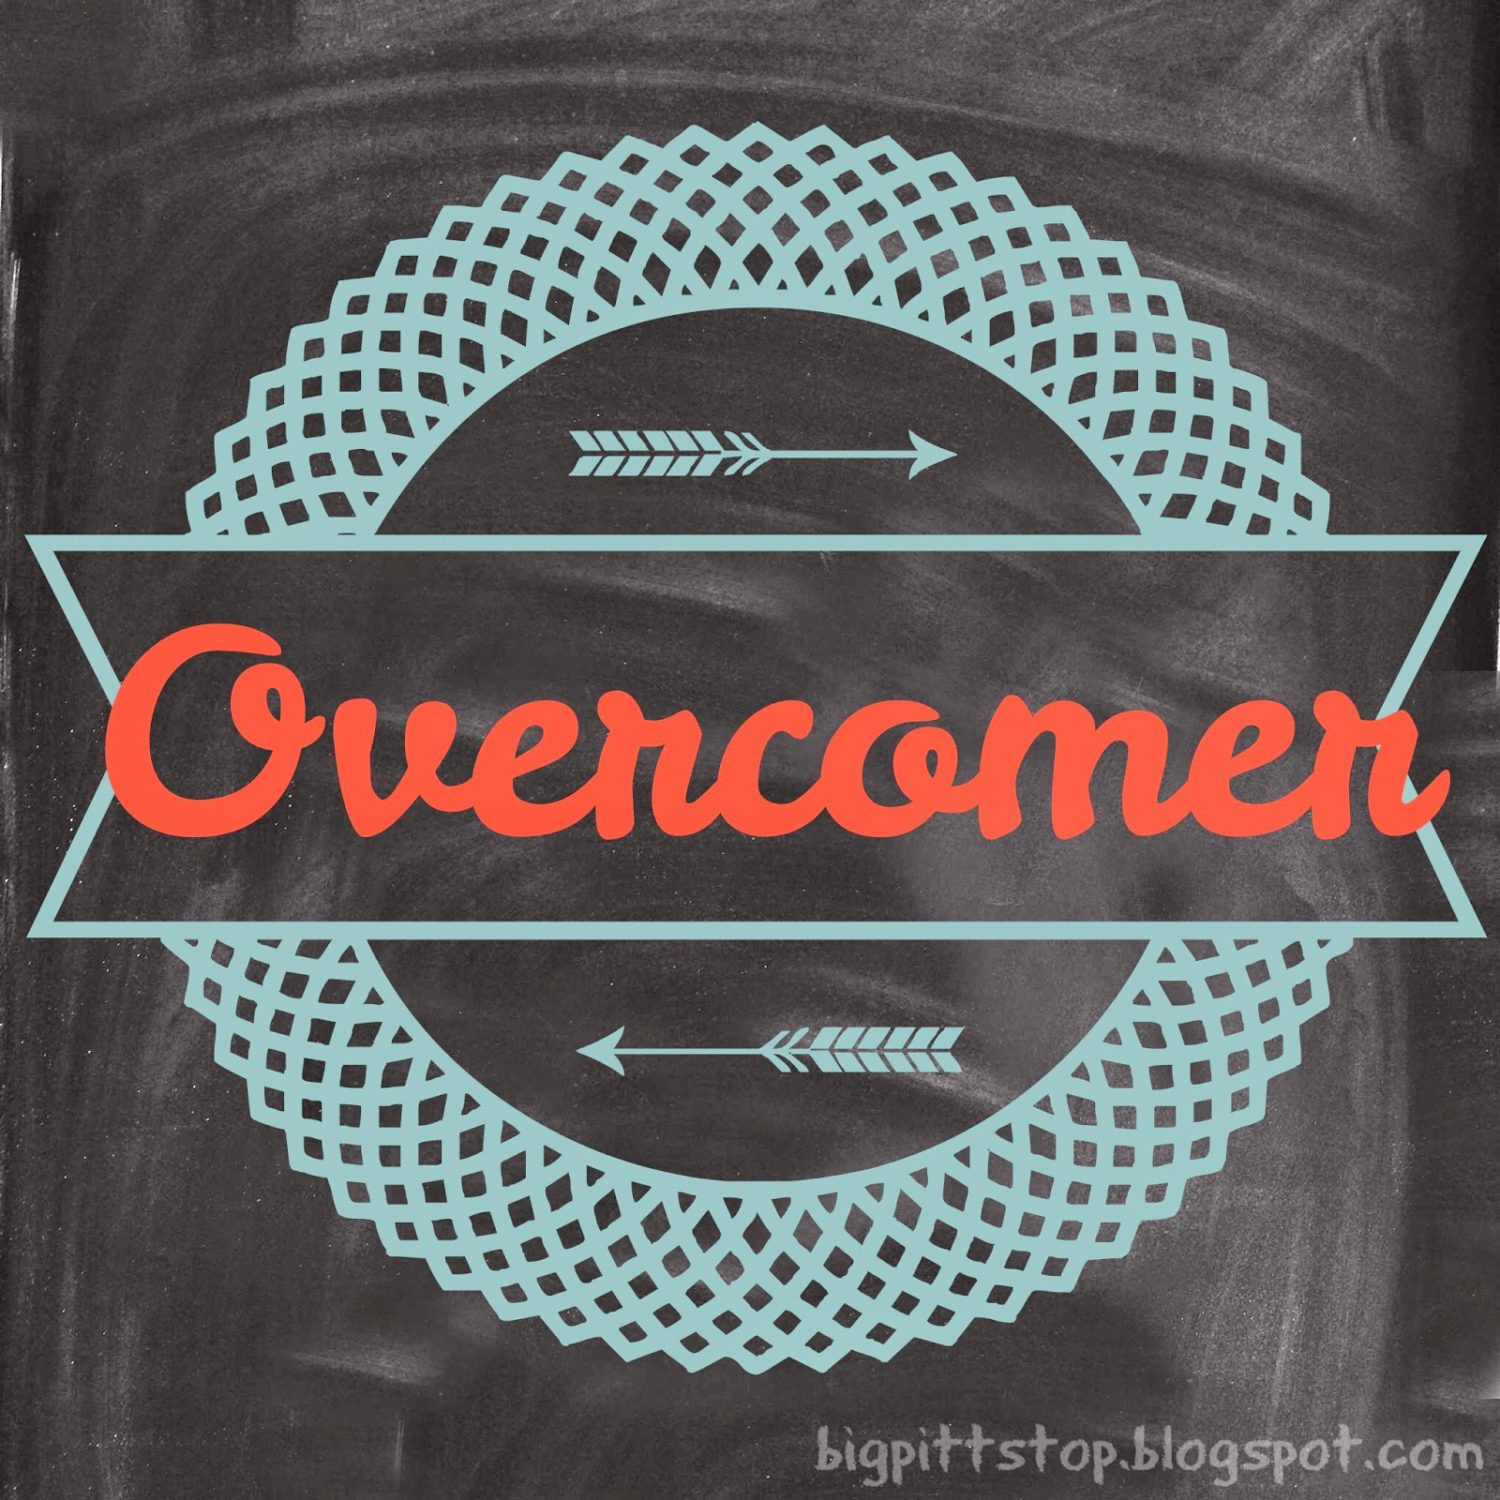 OVERCOMER: Greg Pierce